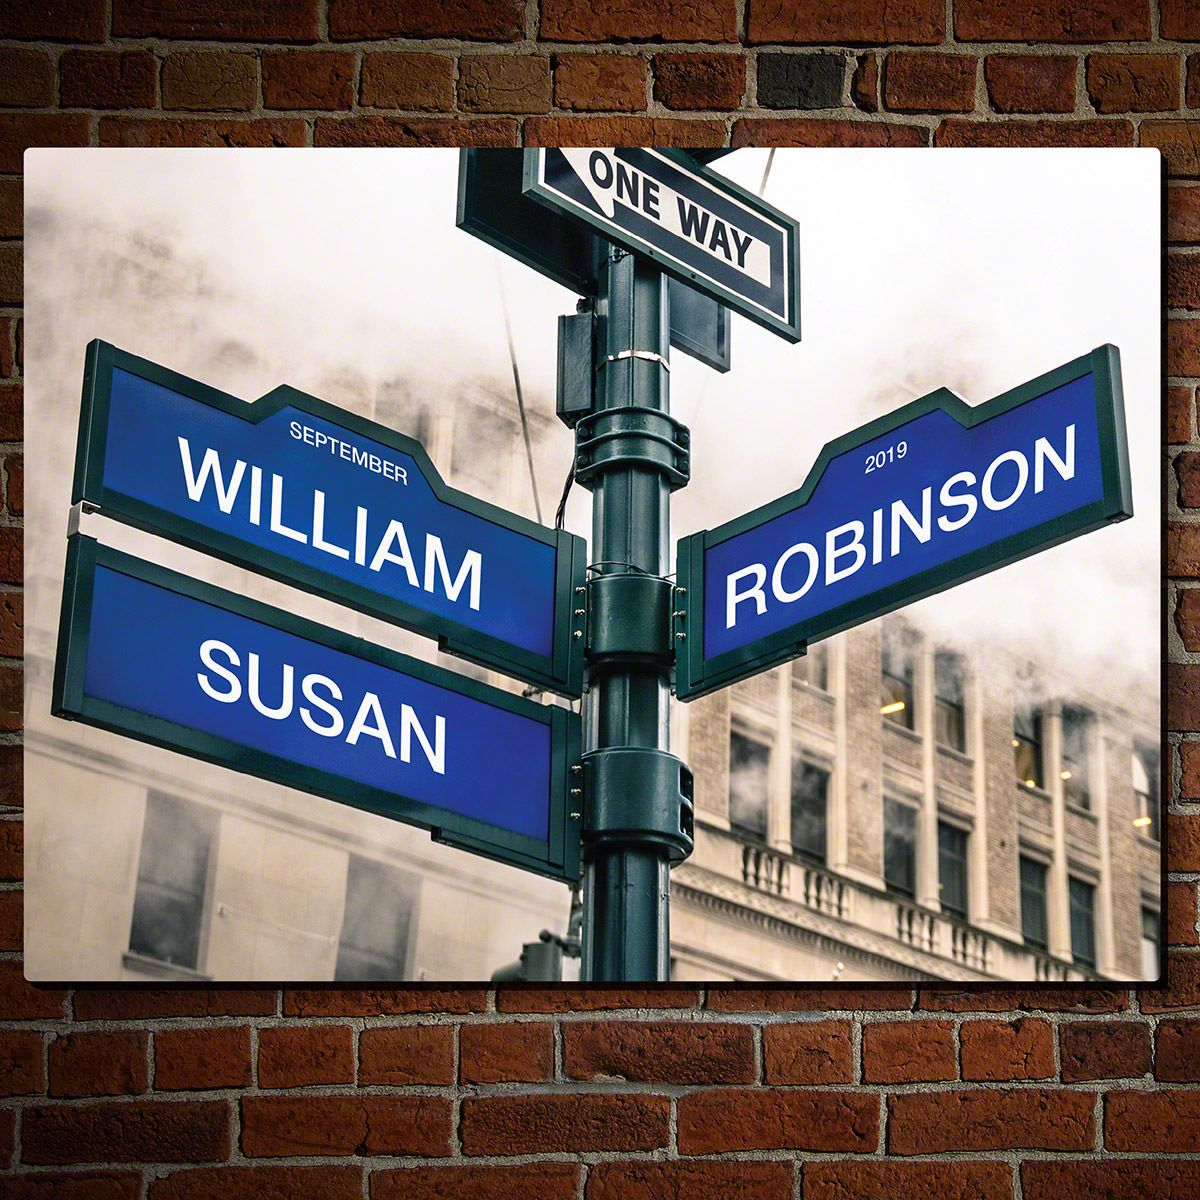 Personalized Street Signs >> Path To Love Personalized Street Sign Gift Idea For Couples